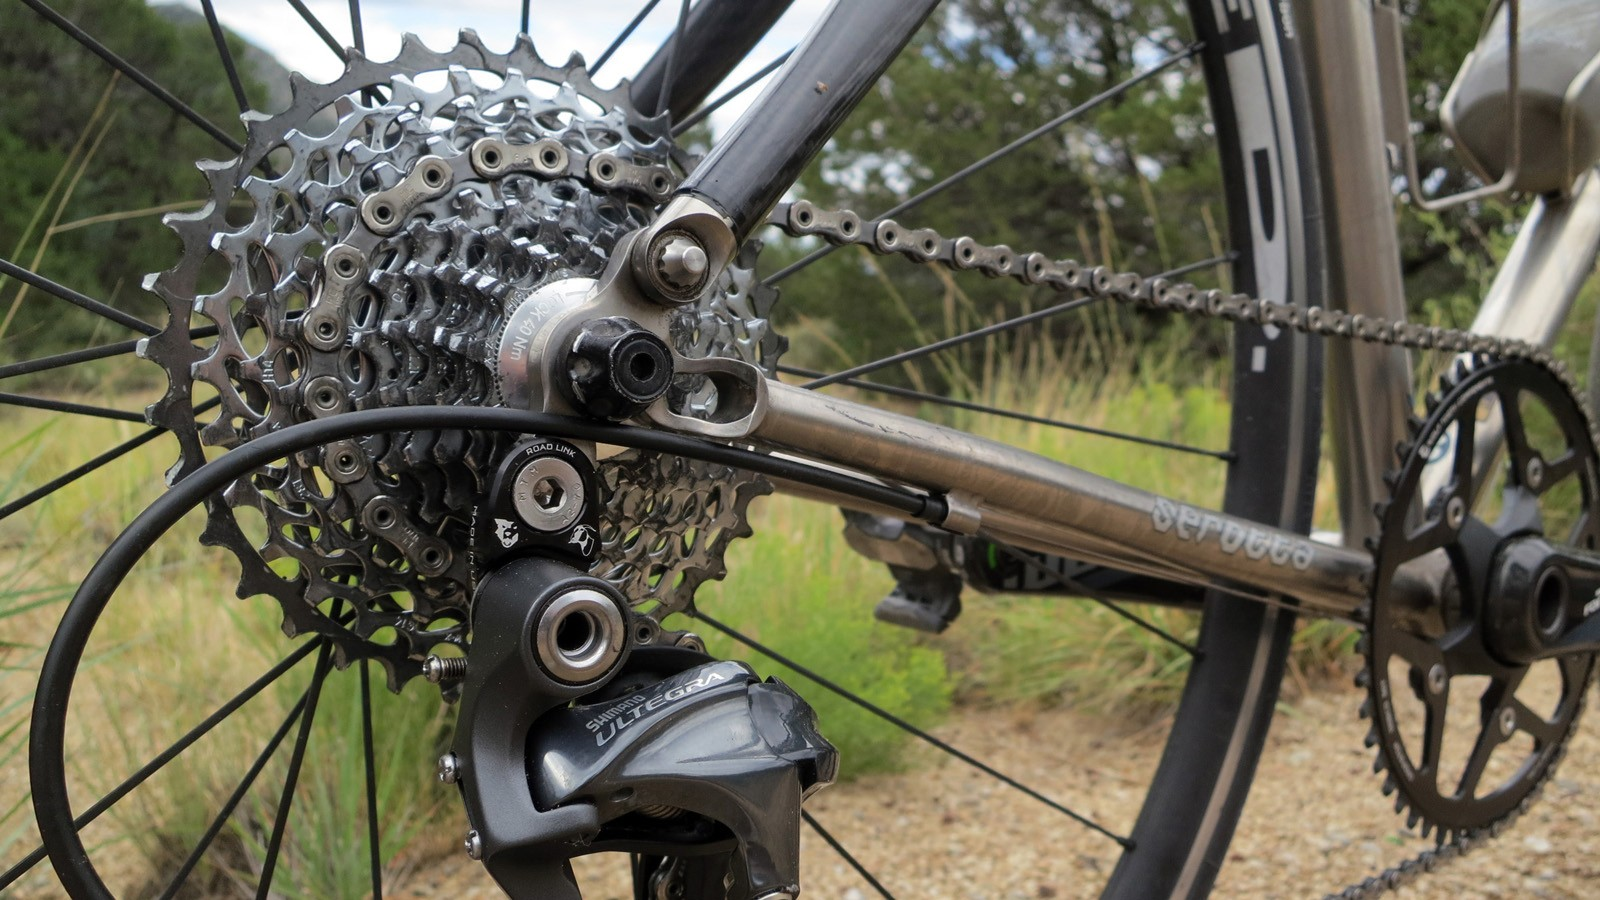 The Lindarets x Wolf Tooth Components RoadLink is aimed at the growing number of road, cyclocross, touring and gravel riders wanting a wider gear range or a simpler single-ring setup